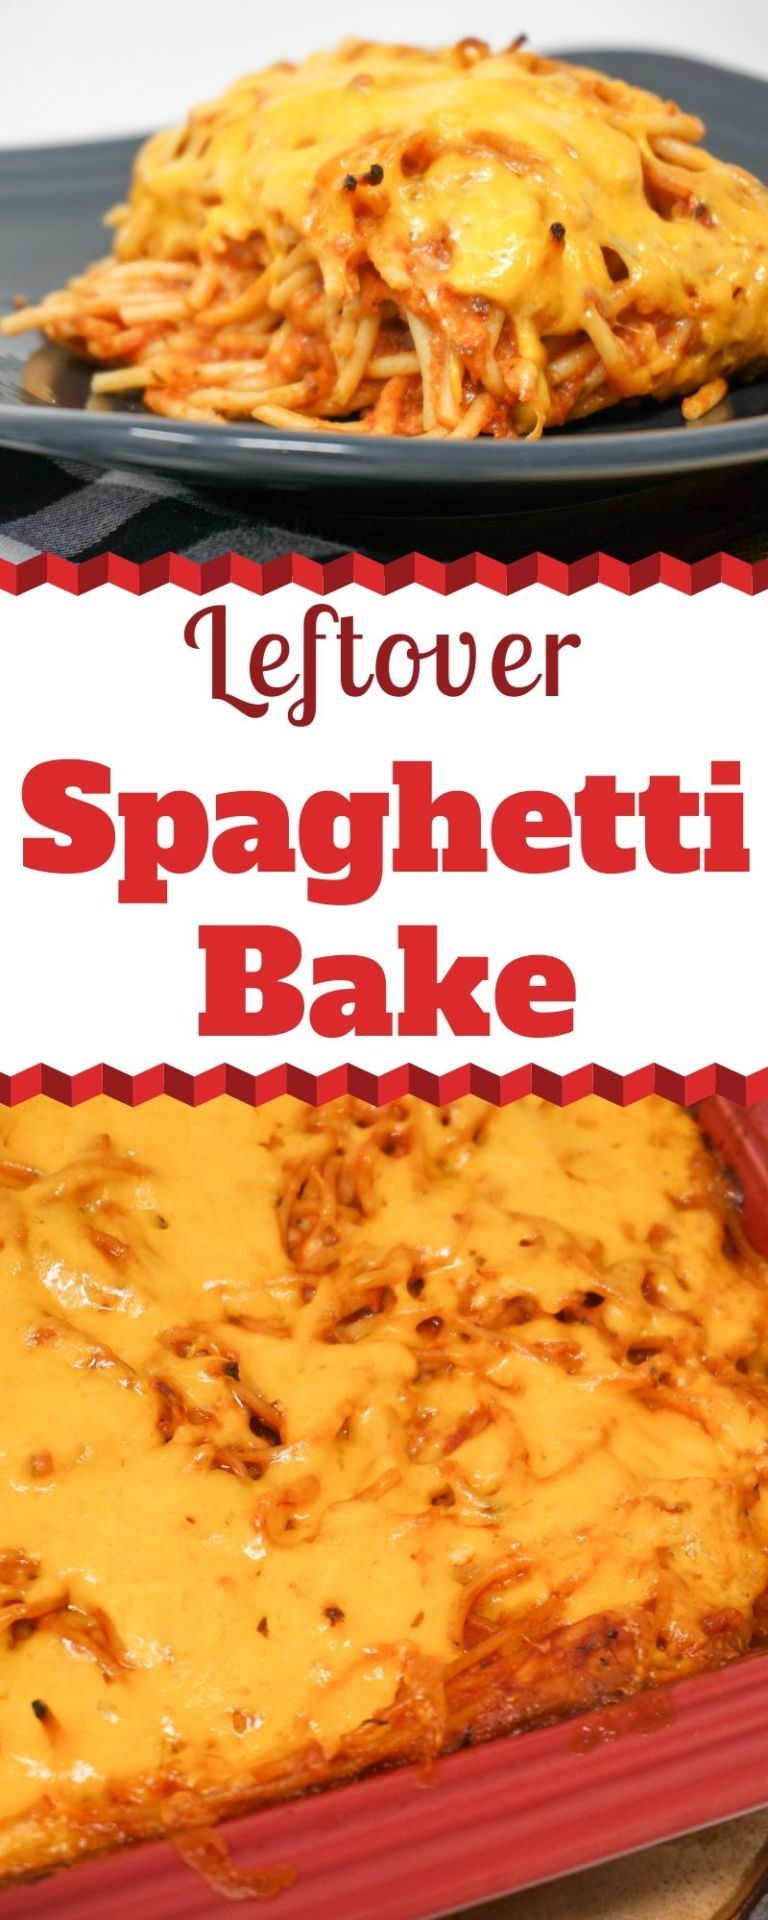 Photo of Leftover Spaghetti Bake | Grace Like Rain Blog